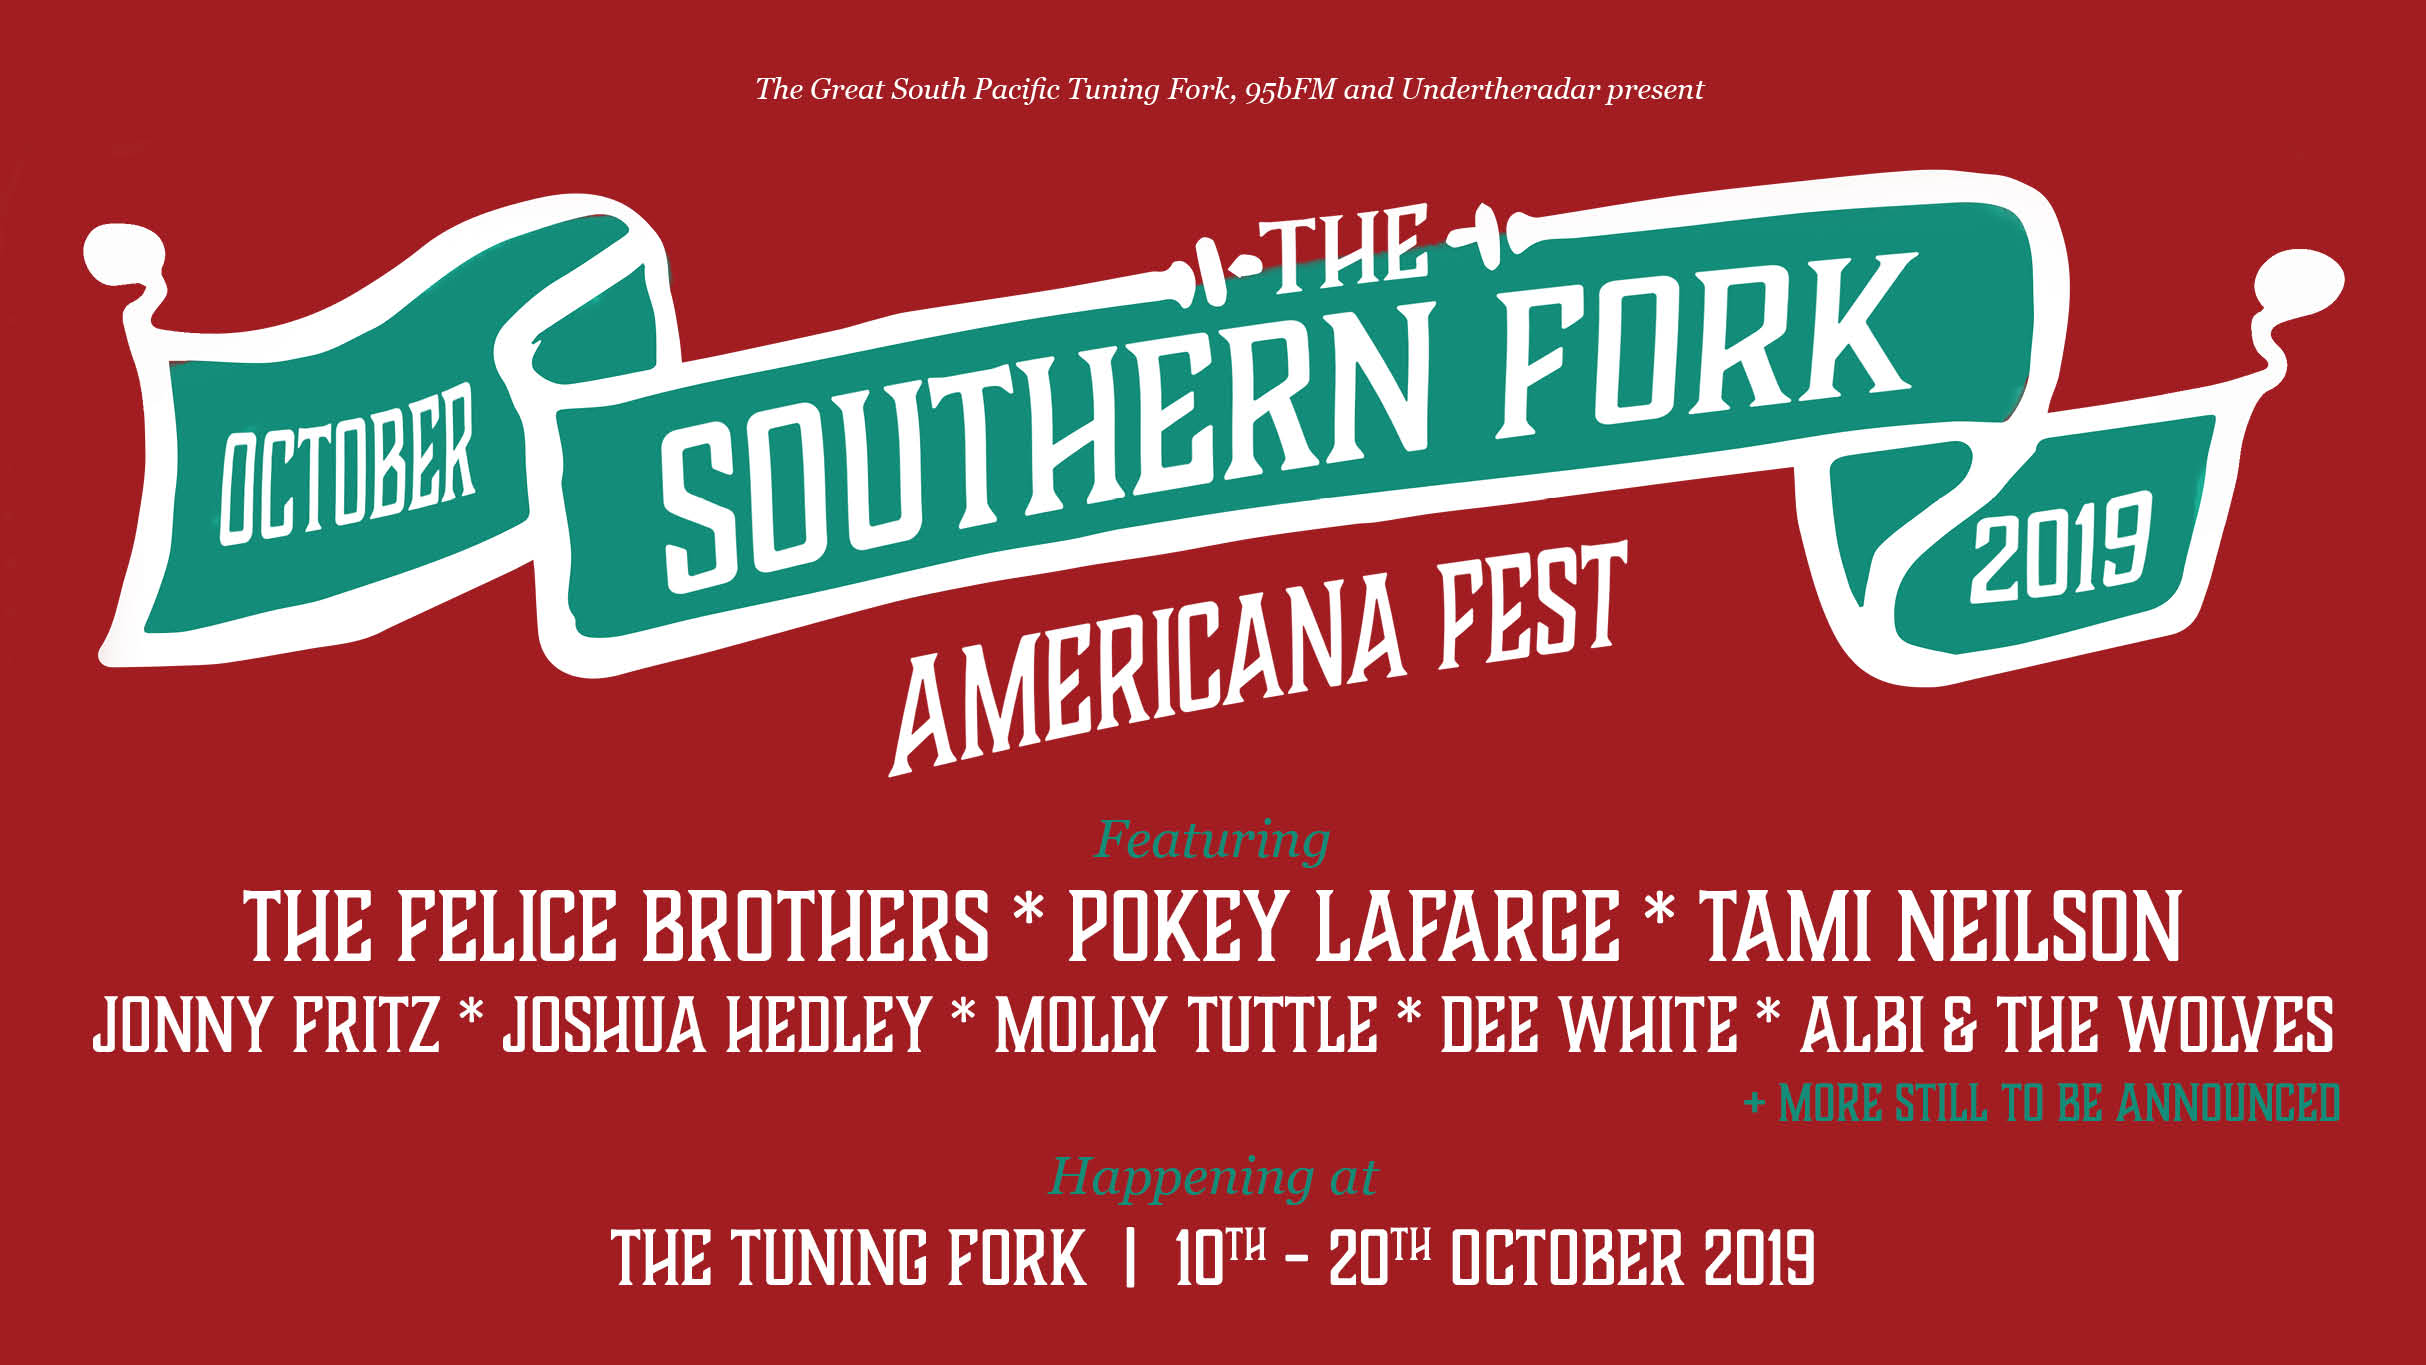 Southern Fork Americana Fest: Albi And The Wolves